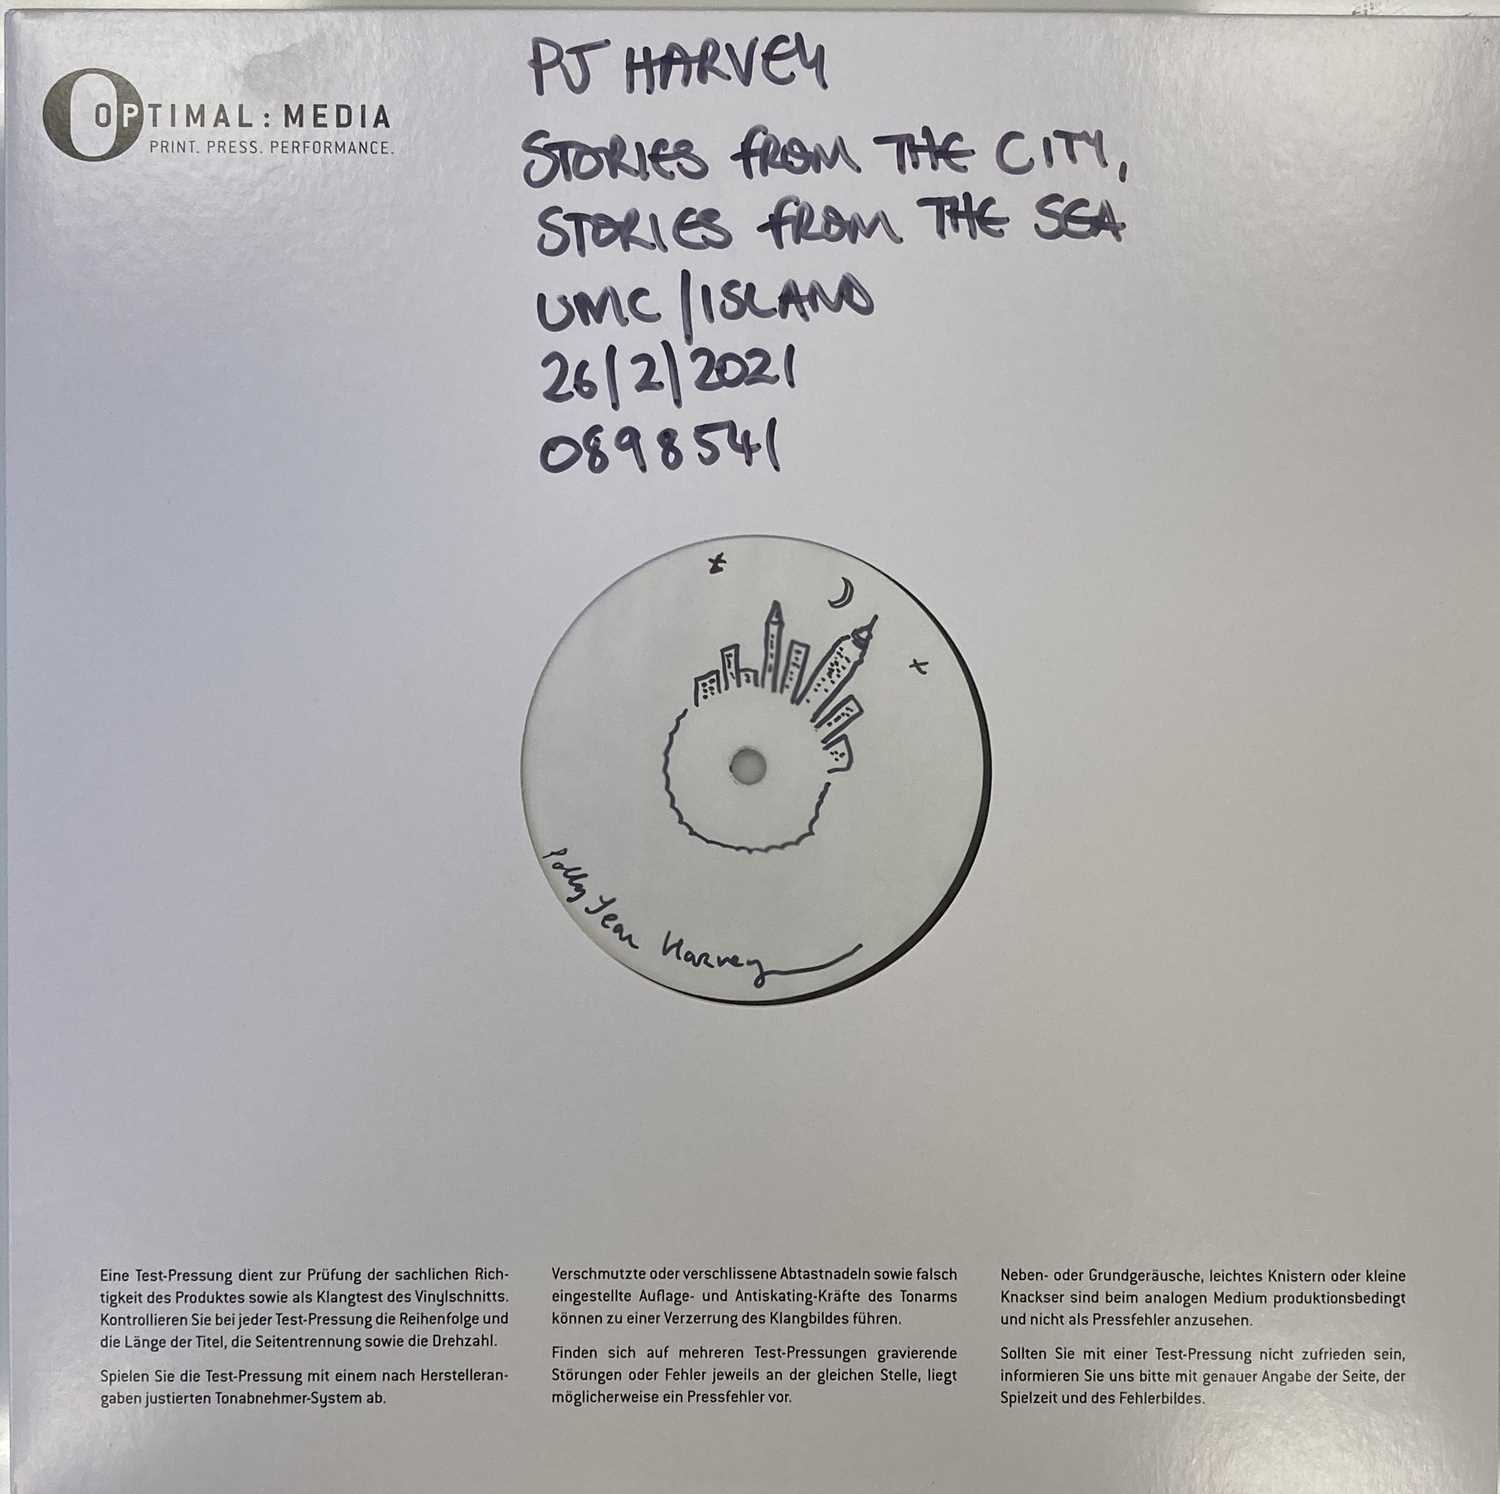 Lot 16 - PJ HARVEY - STORIES FROM THE CITY, STORIES FROM THE SEA LP (SIGNED & ILLUSTRATED WHITE LABEL TEST PRESSING - 2021 RELEASE)